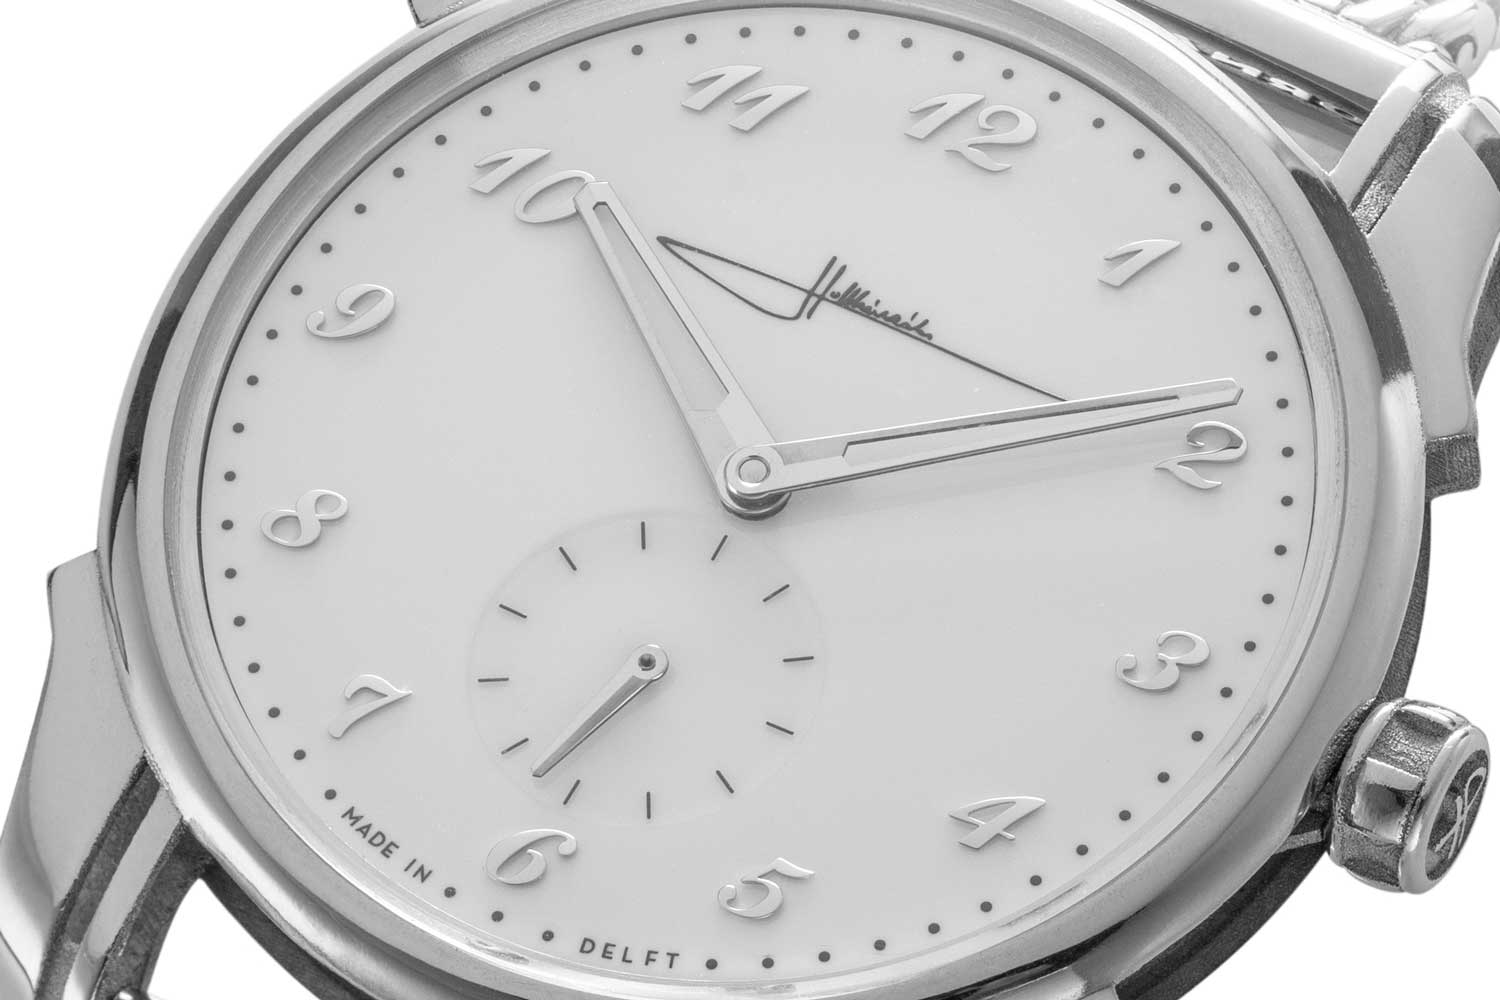 A closer look at the white stretched lacquer dial contrasted by high-polished rounded applied Breguet numerals on the Holthinrichs Refined Elegance Ornament Limited Edition for The Rake (©Revolution)